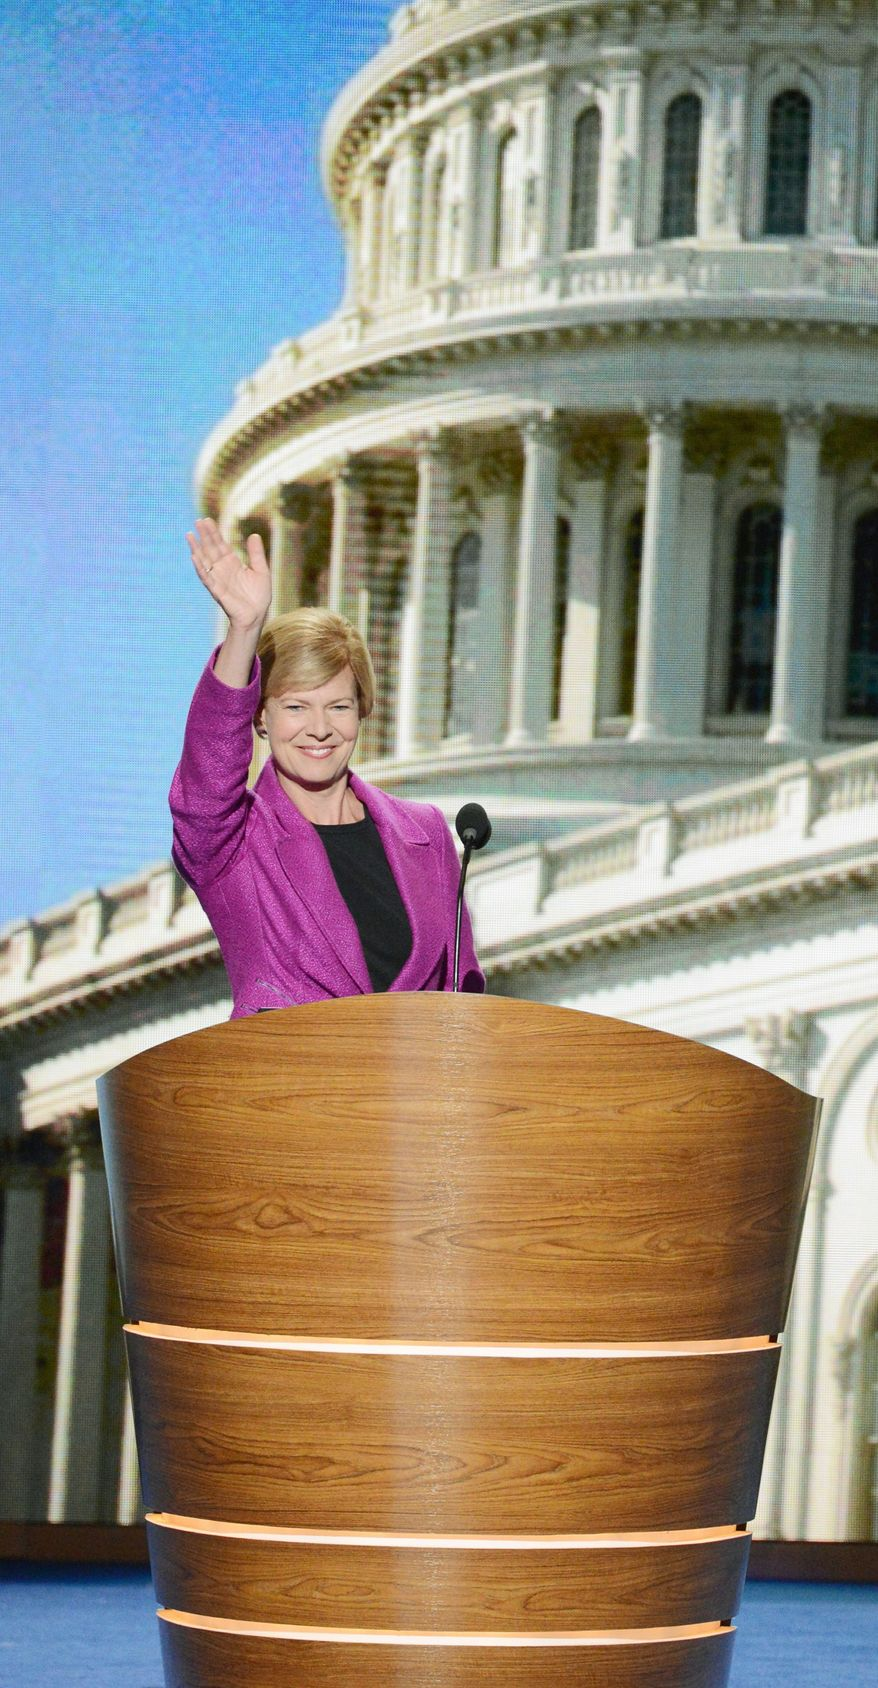 Rep. Tammy Baldwin of Wisconsin is running against former Gov. Tommy Thompson for the U.S. Senate. Their race is important to whether Democrats maintain their majority in the Senate. (Andrew Geraci/The Washington Times)